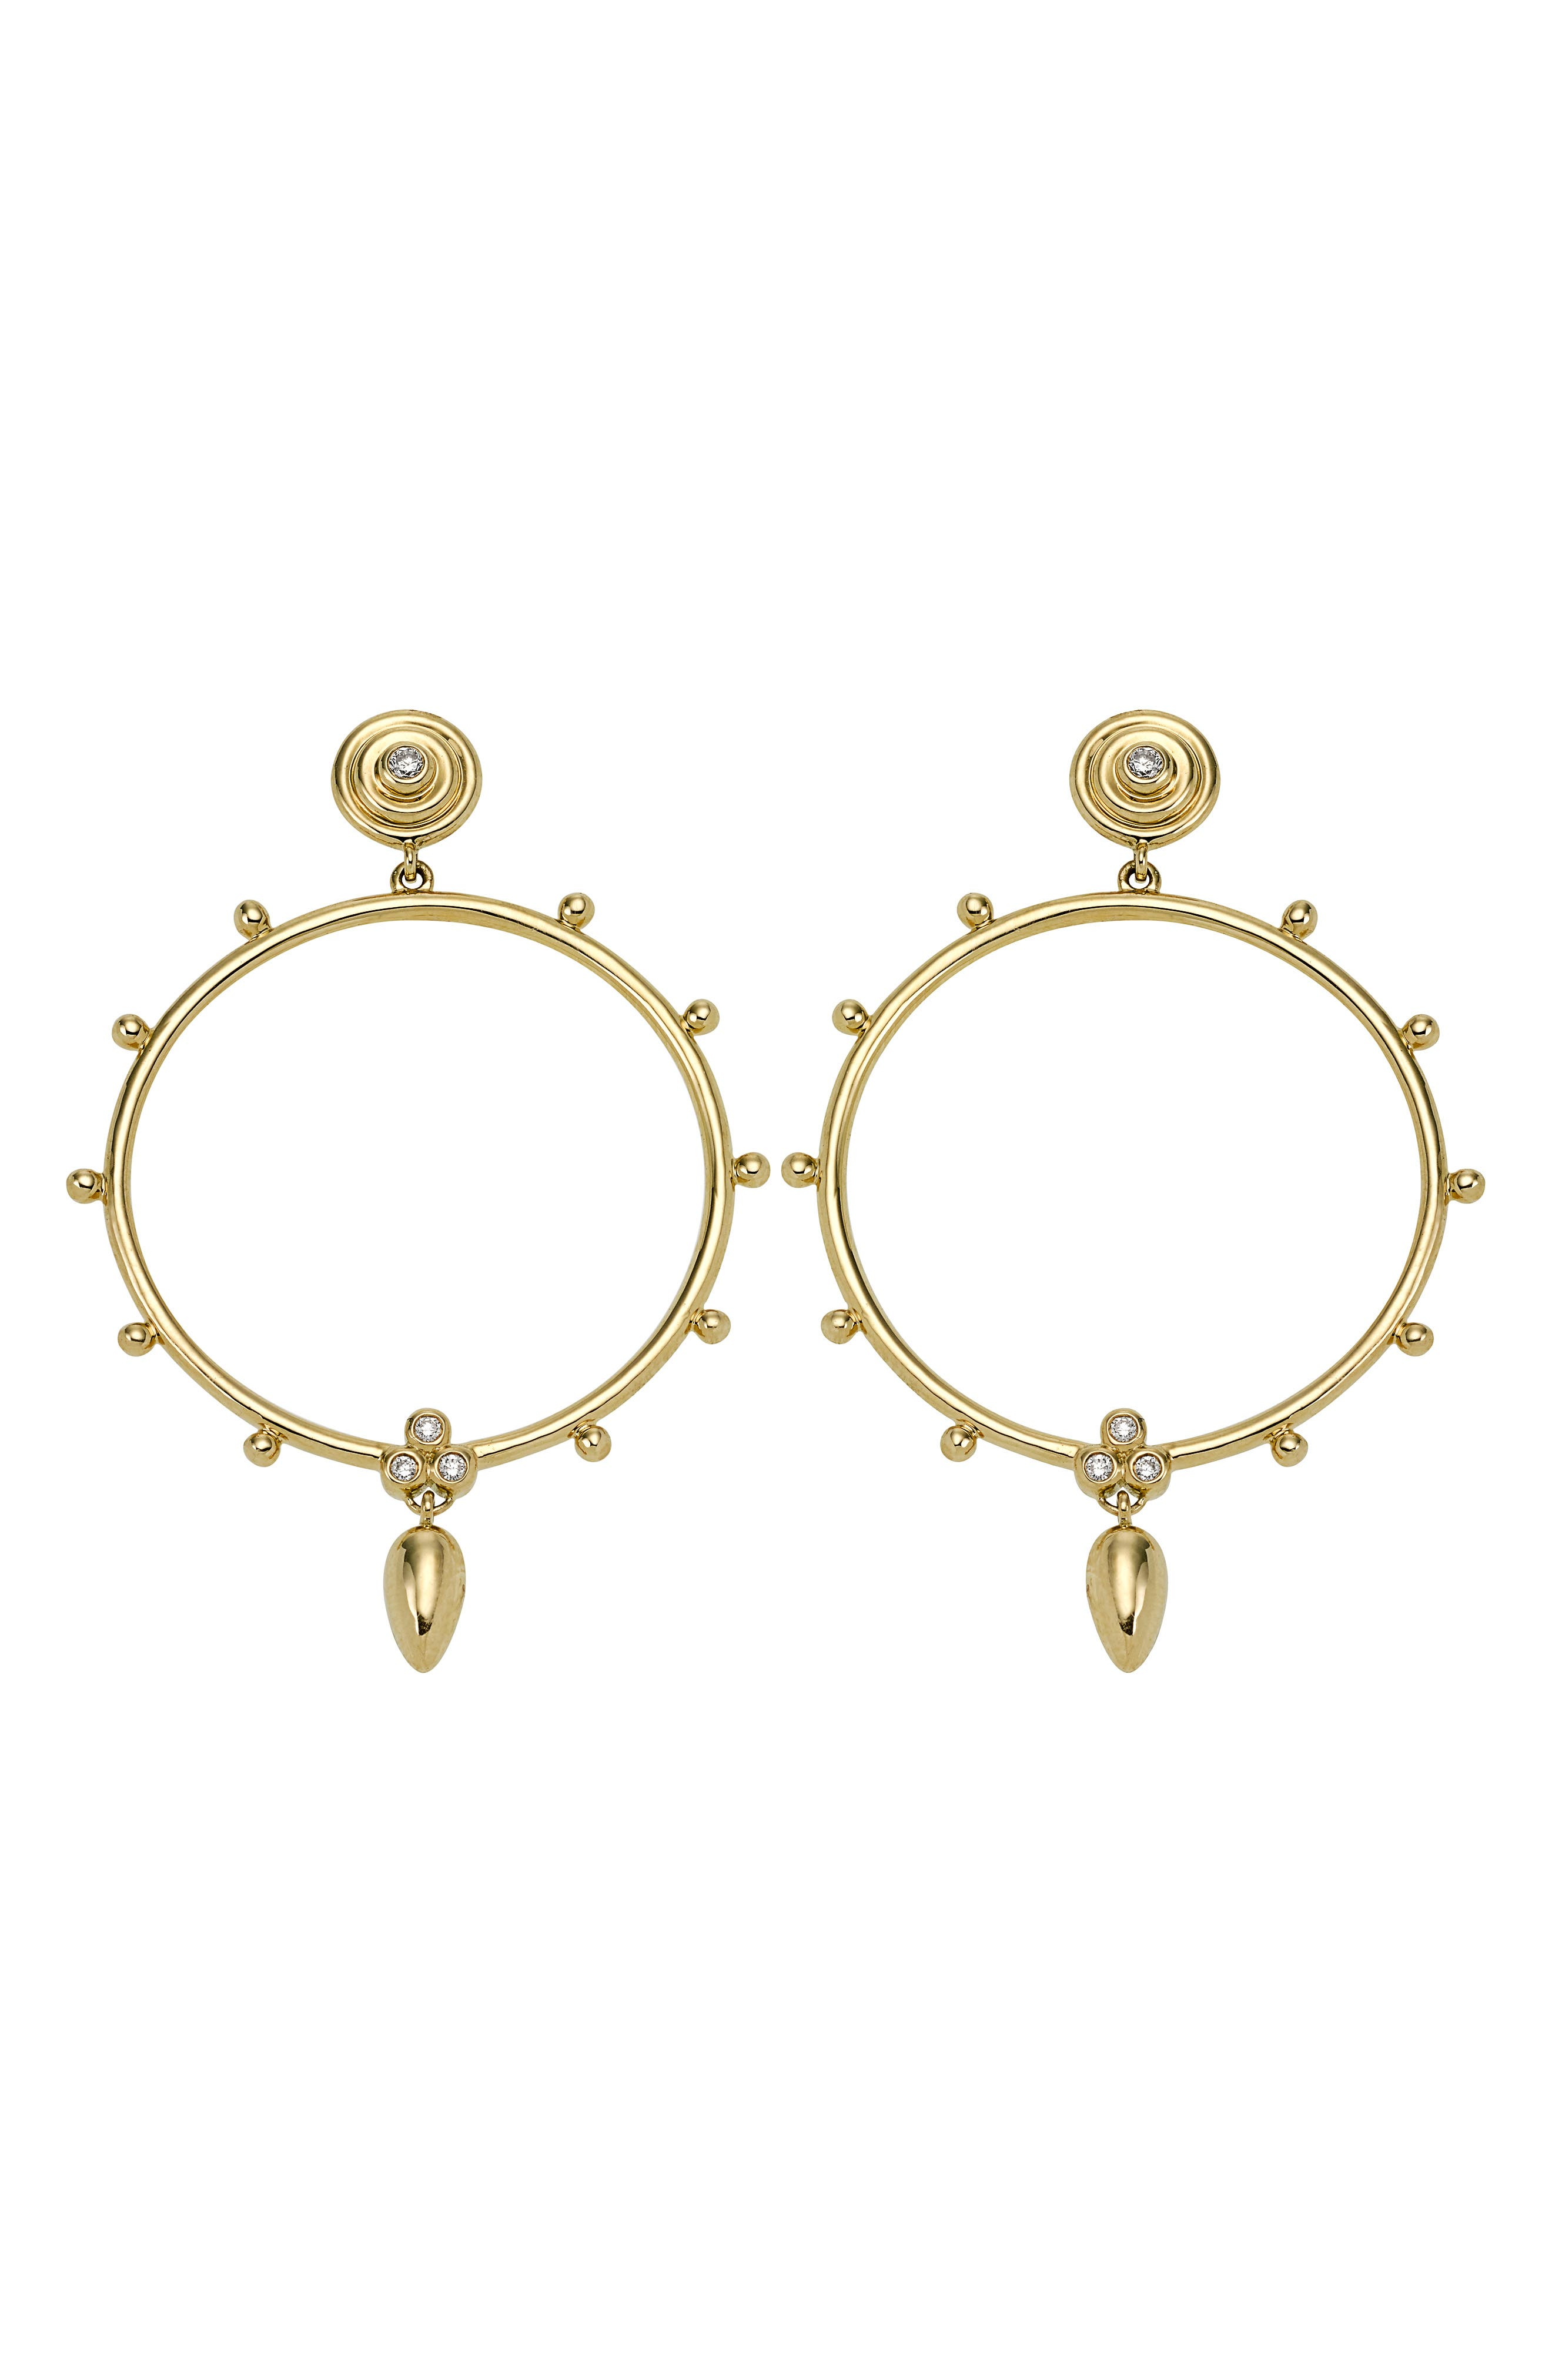 TEMPLE ST CLAIR 18K Gold & Diamond Circle Anfora Earrings